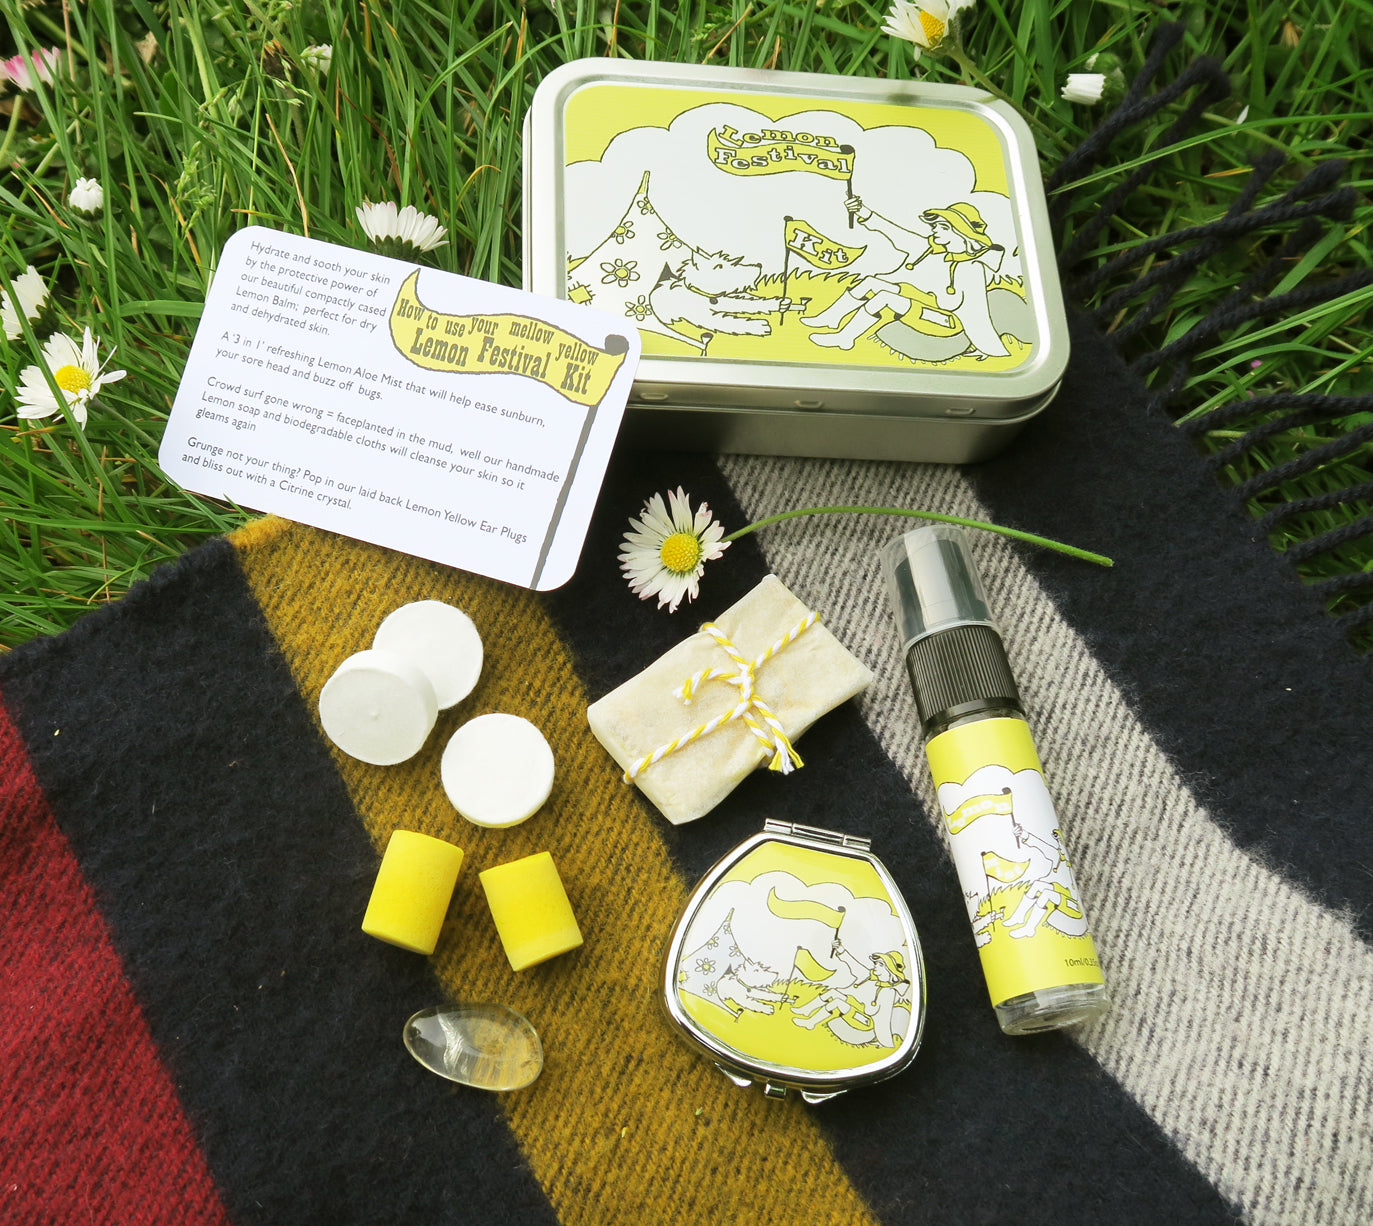 Kits in Tins - Lemon Balm Festival Kit - Andrea Garland